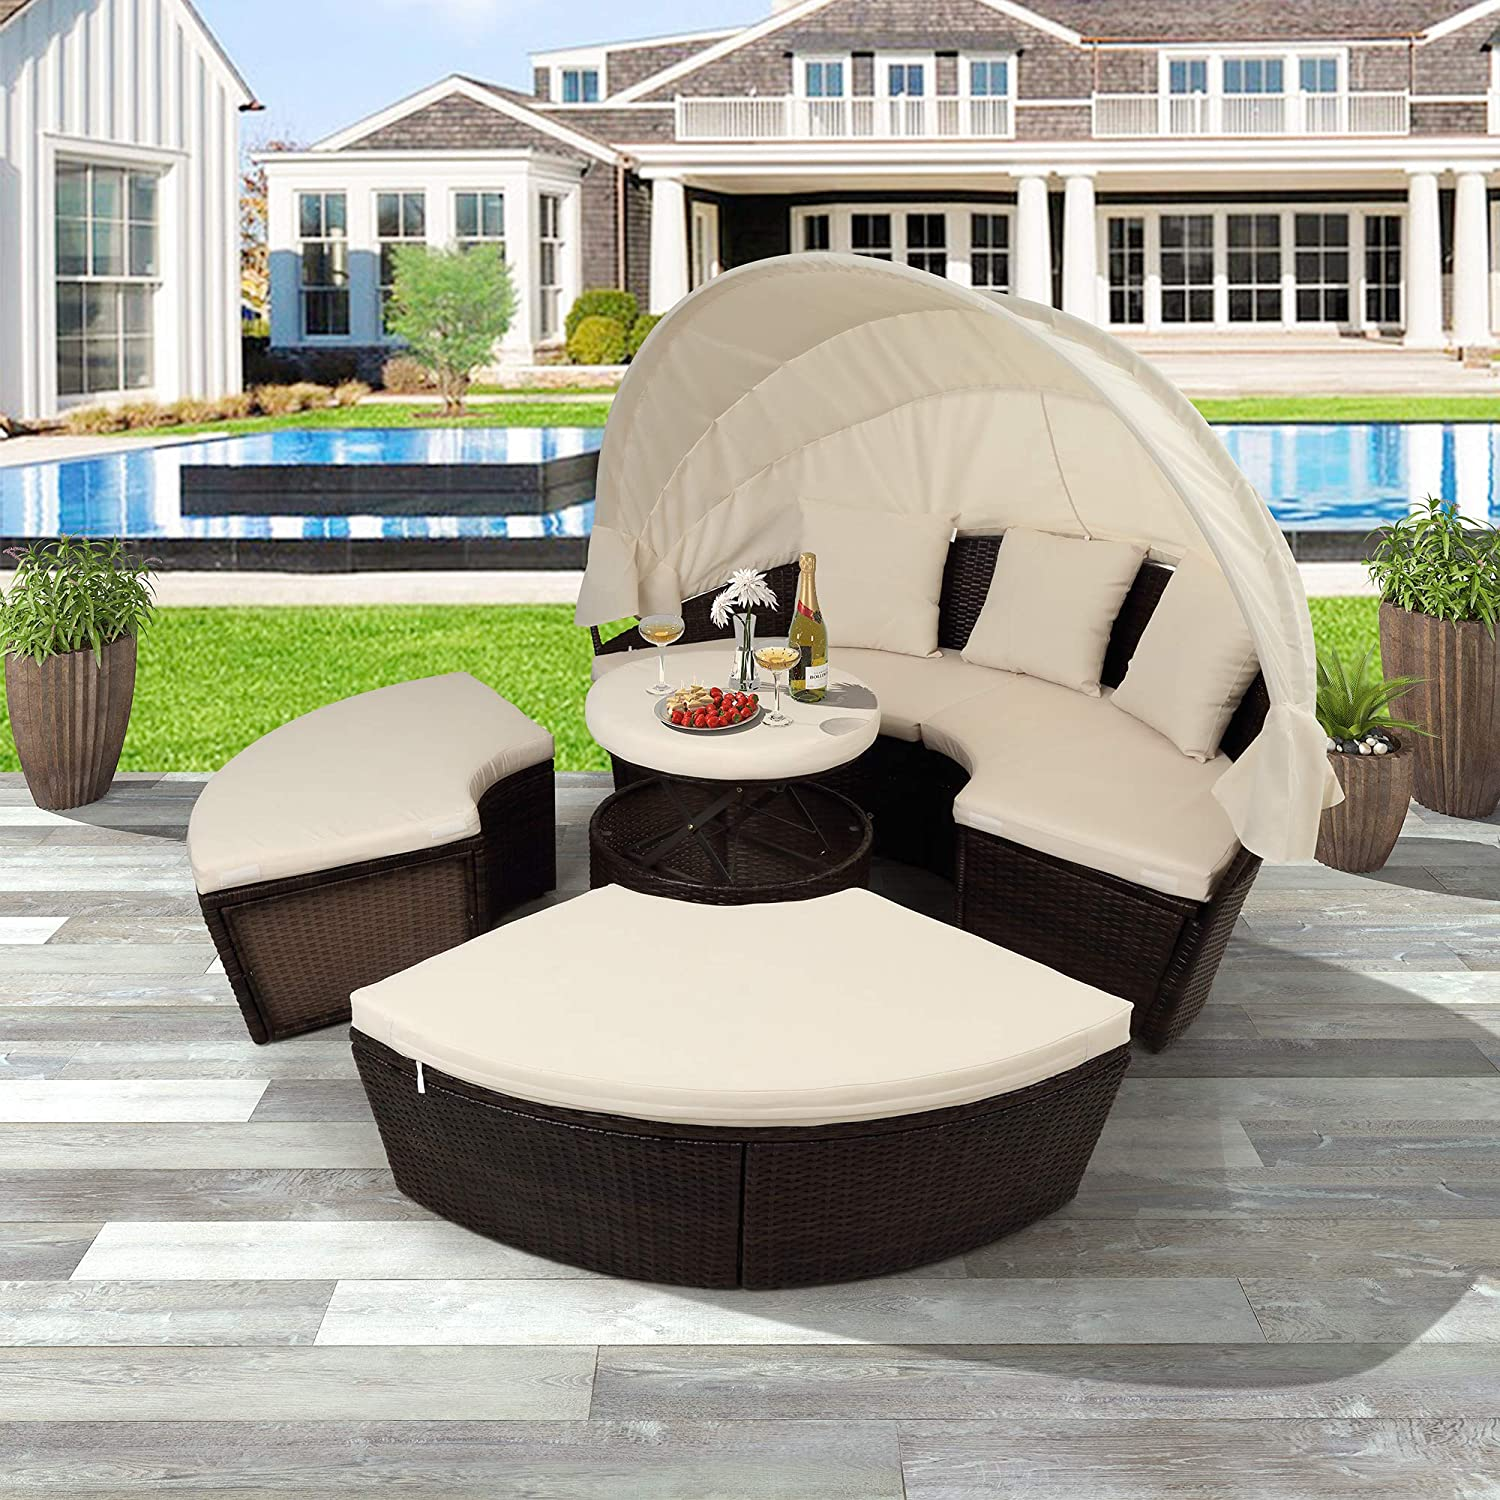 Lucakuins Patio Furniture Outdoor Daybed with Retractable Canopy Wicker Furniture Sectional Seating with Washable Cushions for Patio Backyard Porch Pool Round Daybed Separated Seating (Beige-A)